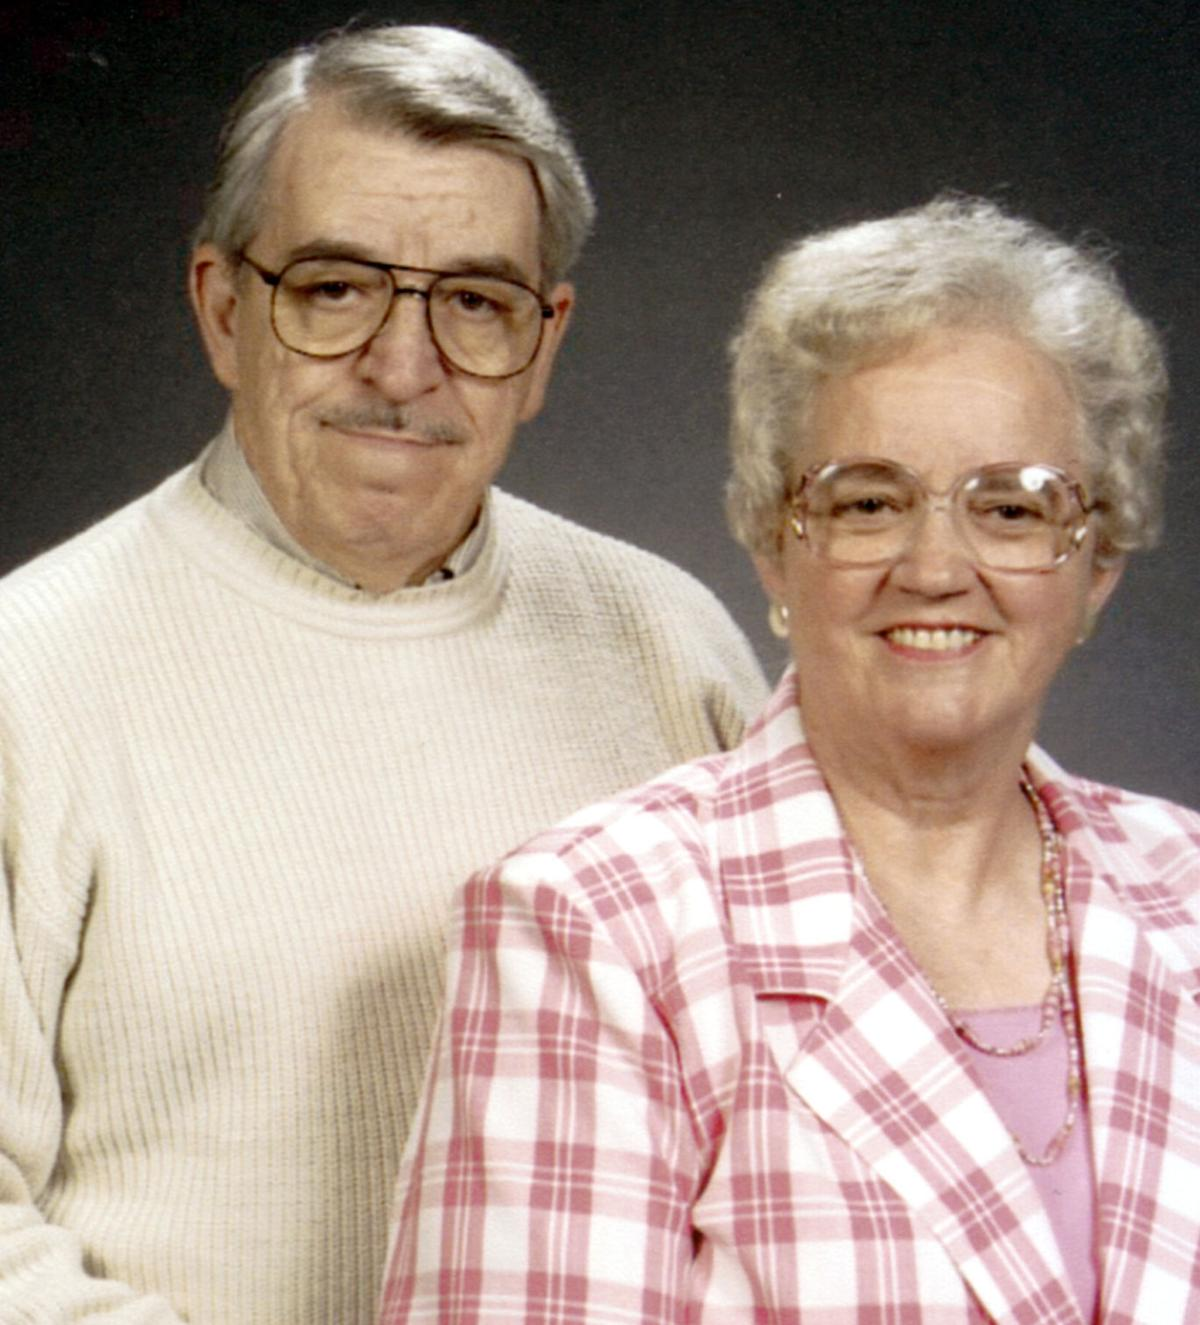 Mr. and Mrs. George Ross celebrate 50th wedding anniversary